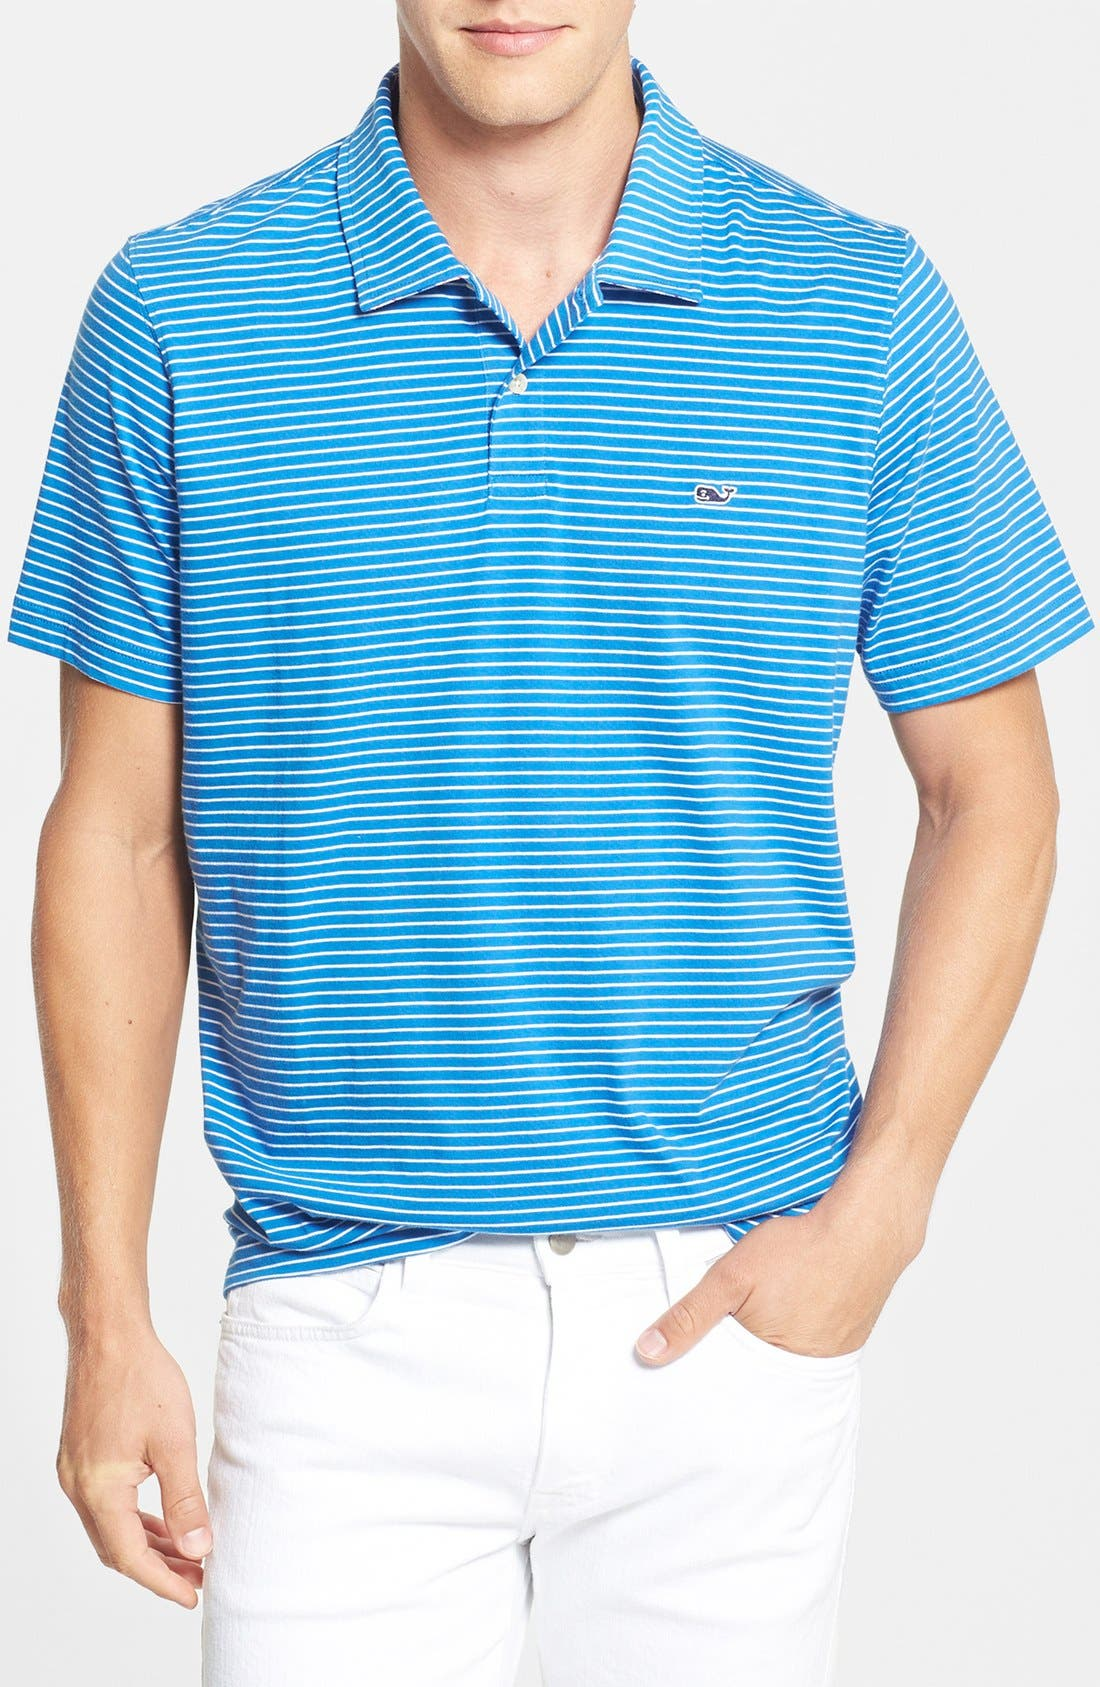 Alternate Image 1 Selected - Vineyard Vines 'Rigsby' Stripe Jersey Polo